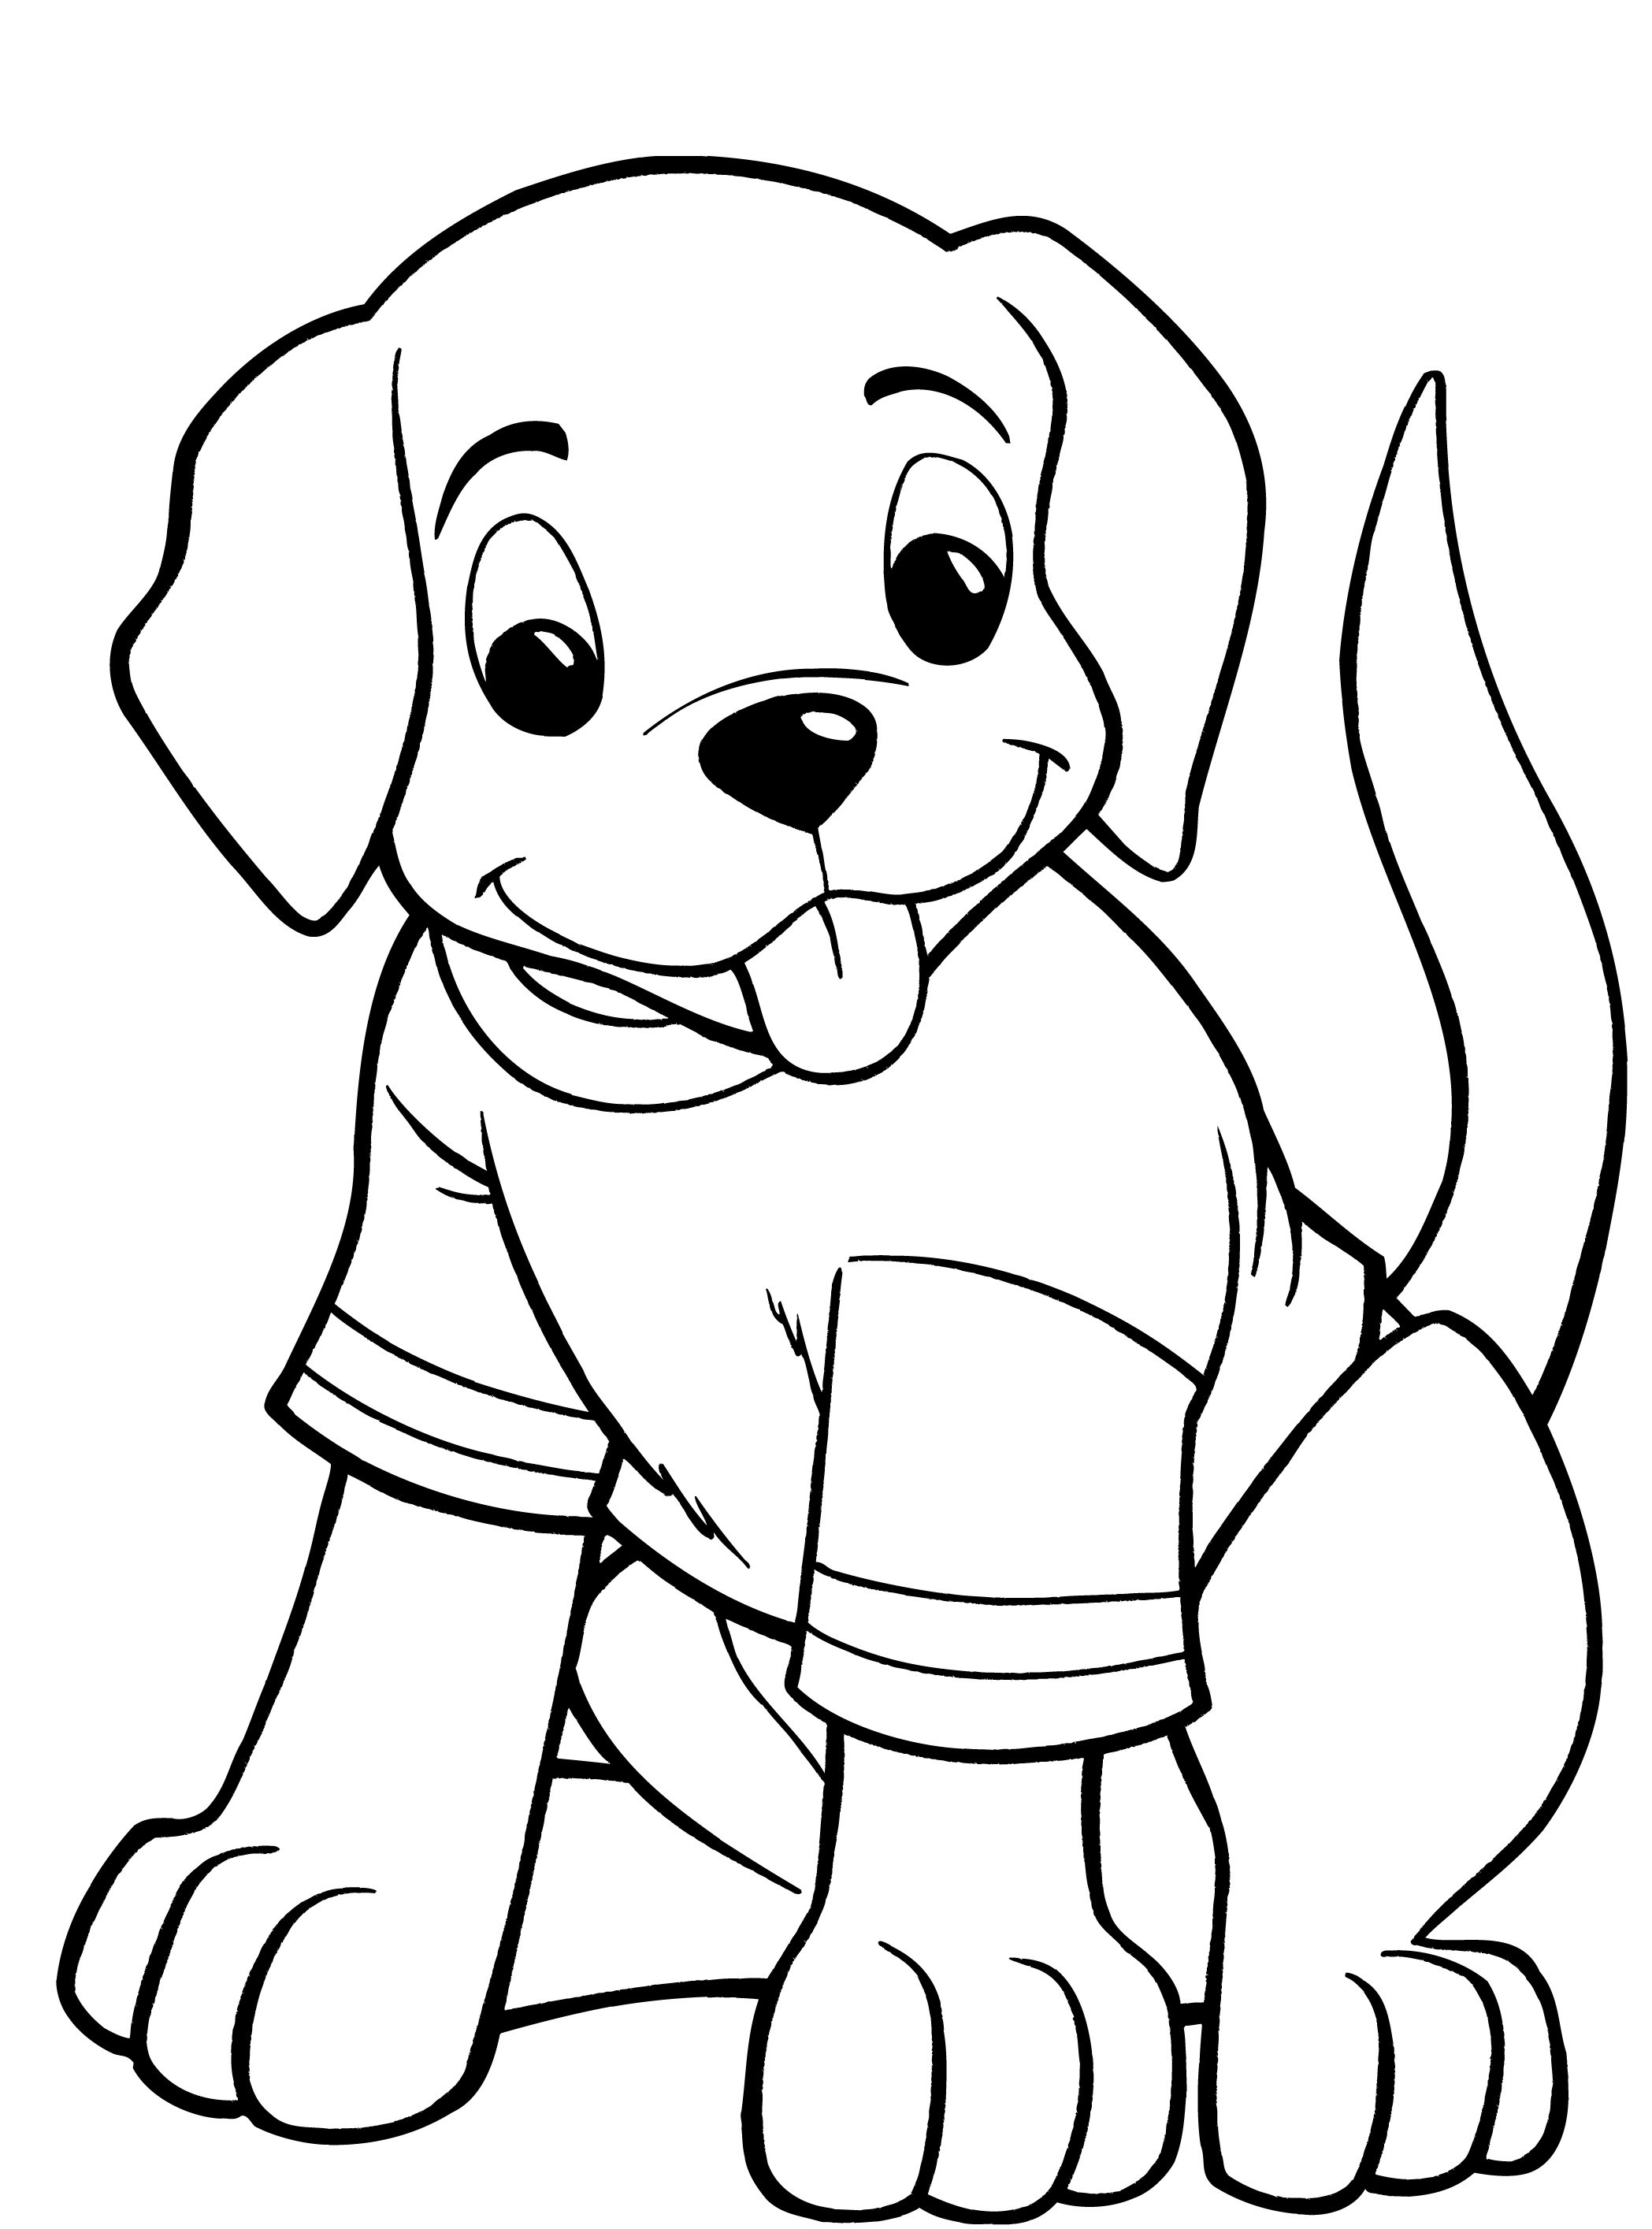 coloring in pages of dogs | Dog Coloring Pages For Kids - Preschool and Kindergarten